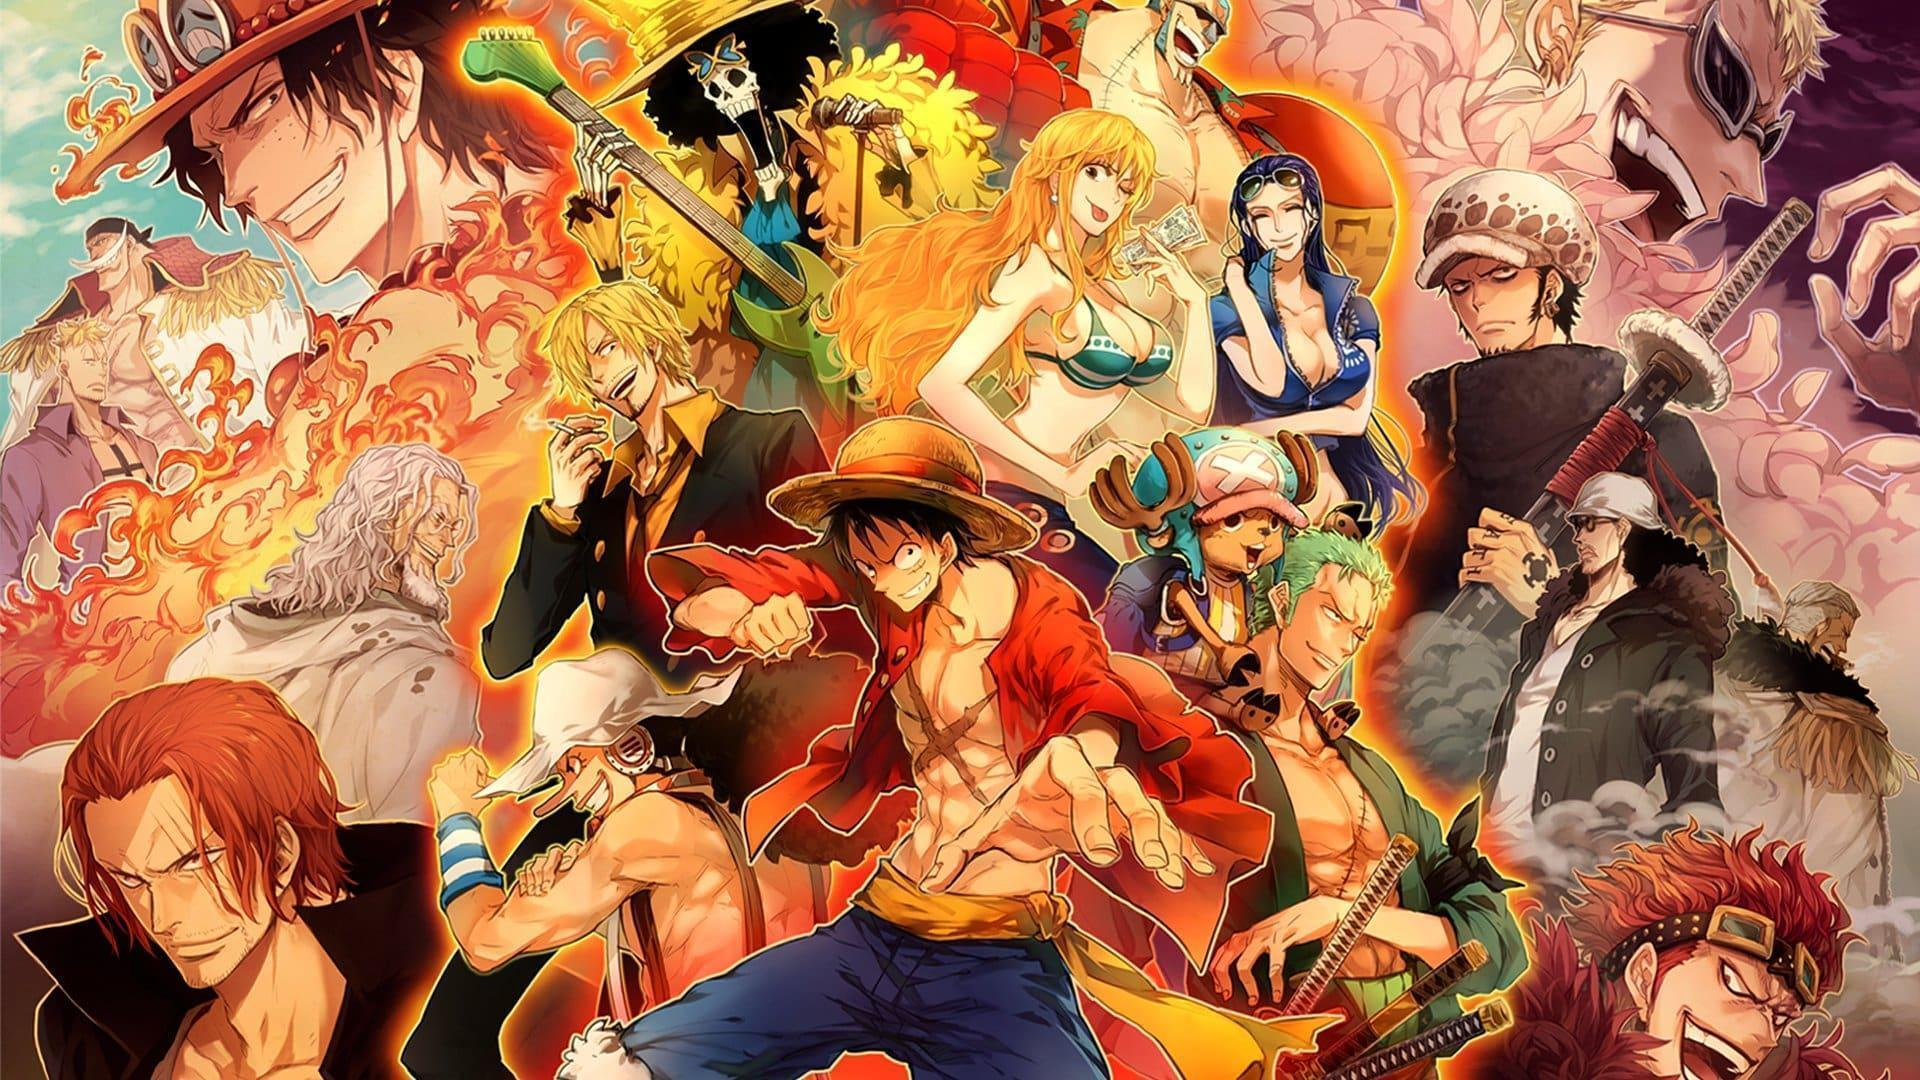 أنمي One Piece ون بيس الحلقة 1 الأولى مترجمة